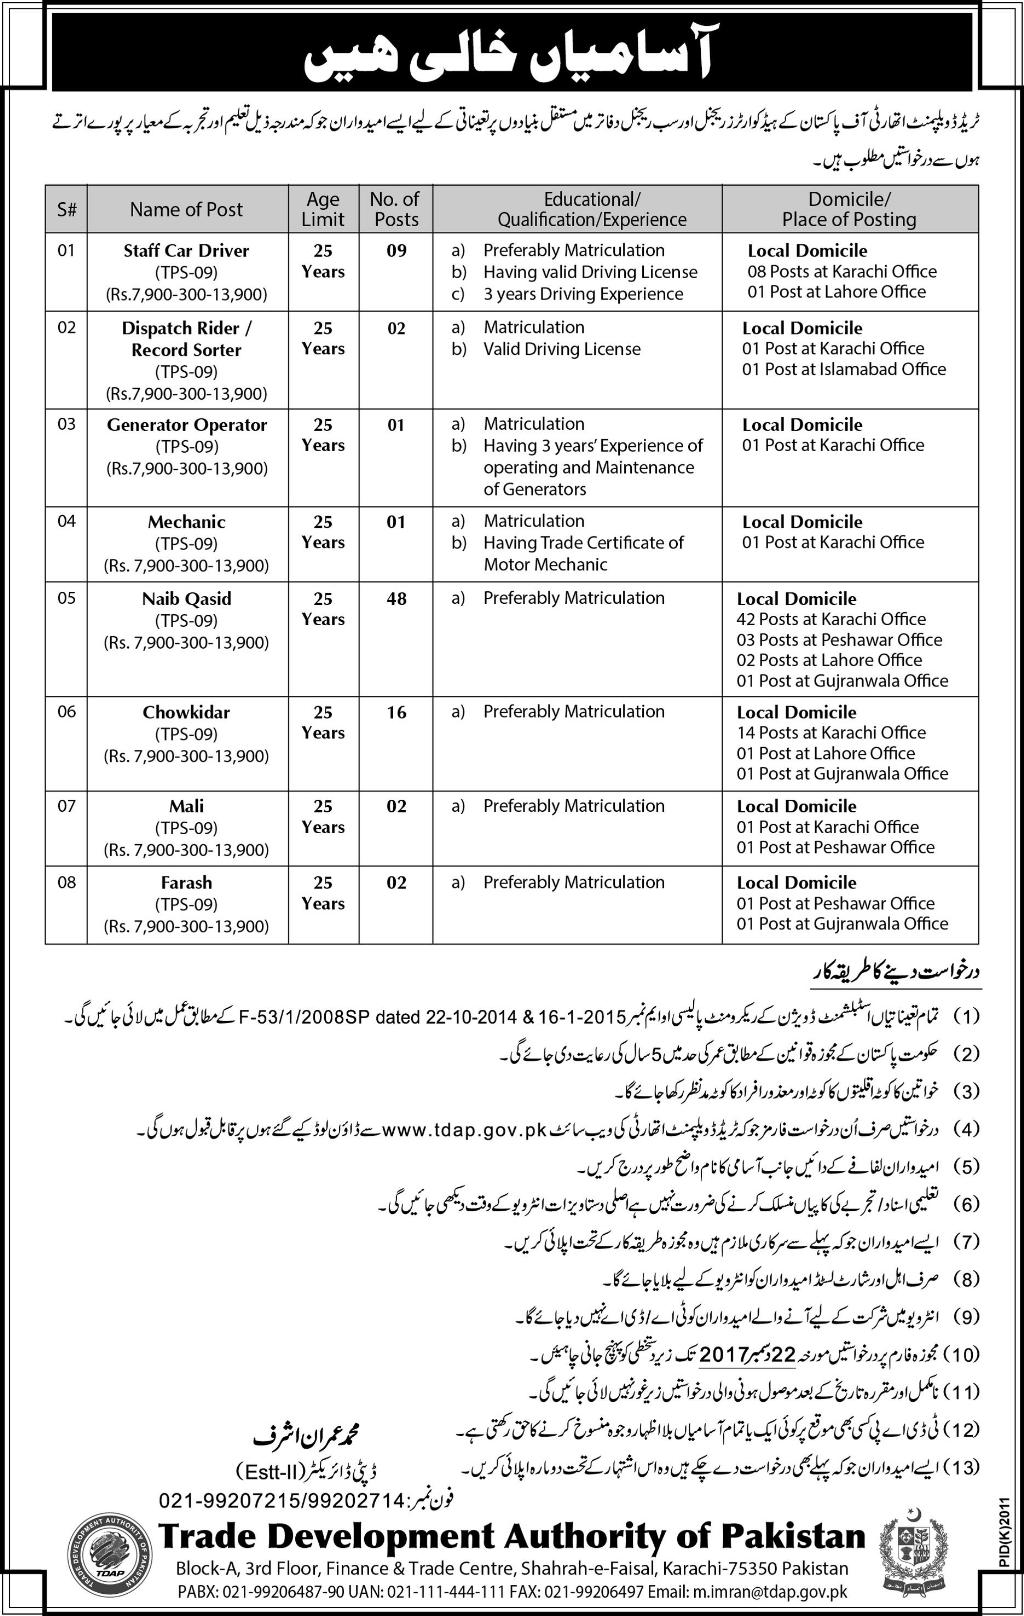 Pakistan Trade Development Authority 81 Jobs Jang Newspaper 05 December 2017